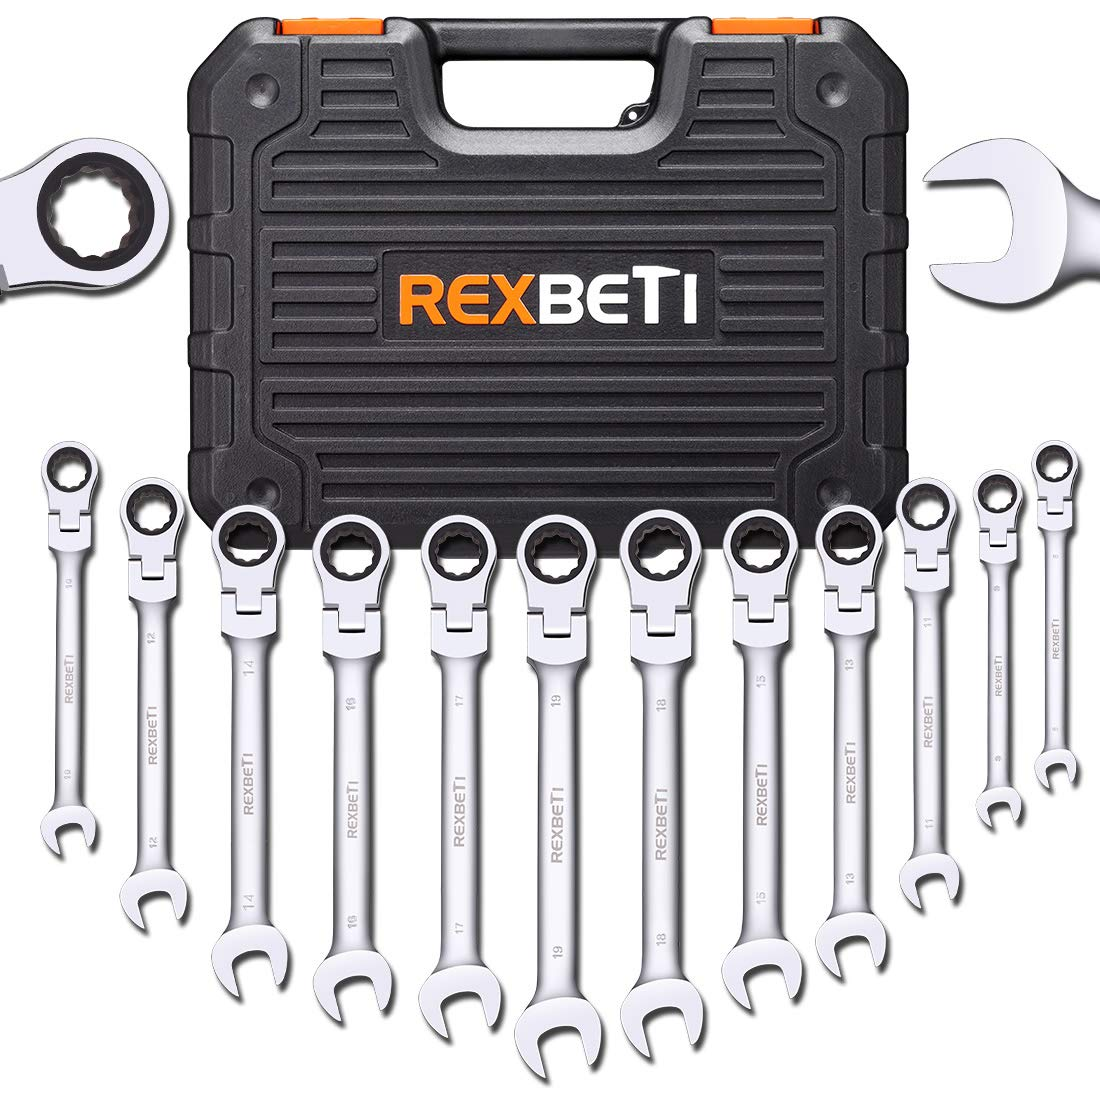 REXBETI 12-Piece Metric Flex-Head Ratcheting Wrench Set, 8-19MM, Chrome Vanadium Steel Combination Wrench Set With Durable Blow Mold Case by REXBETI (Image #1)